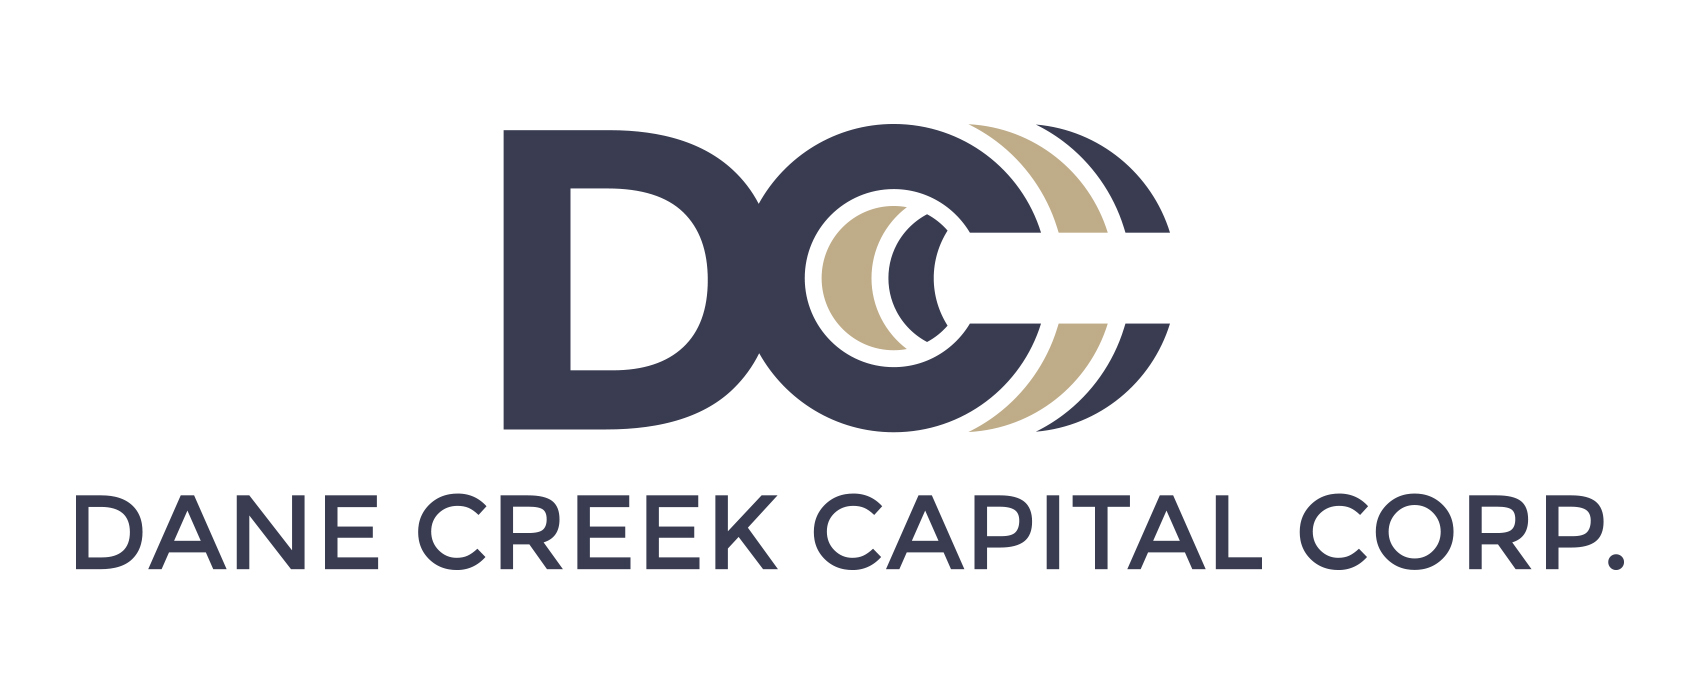 Dane Creek Capital Corp.